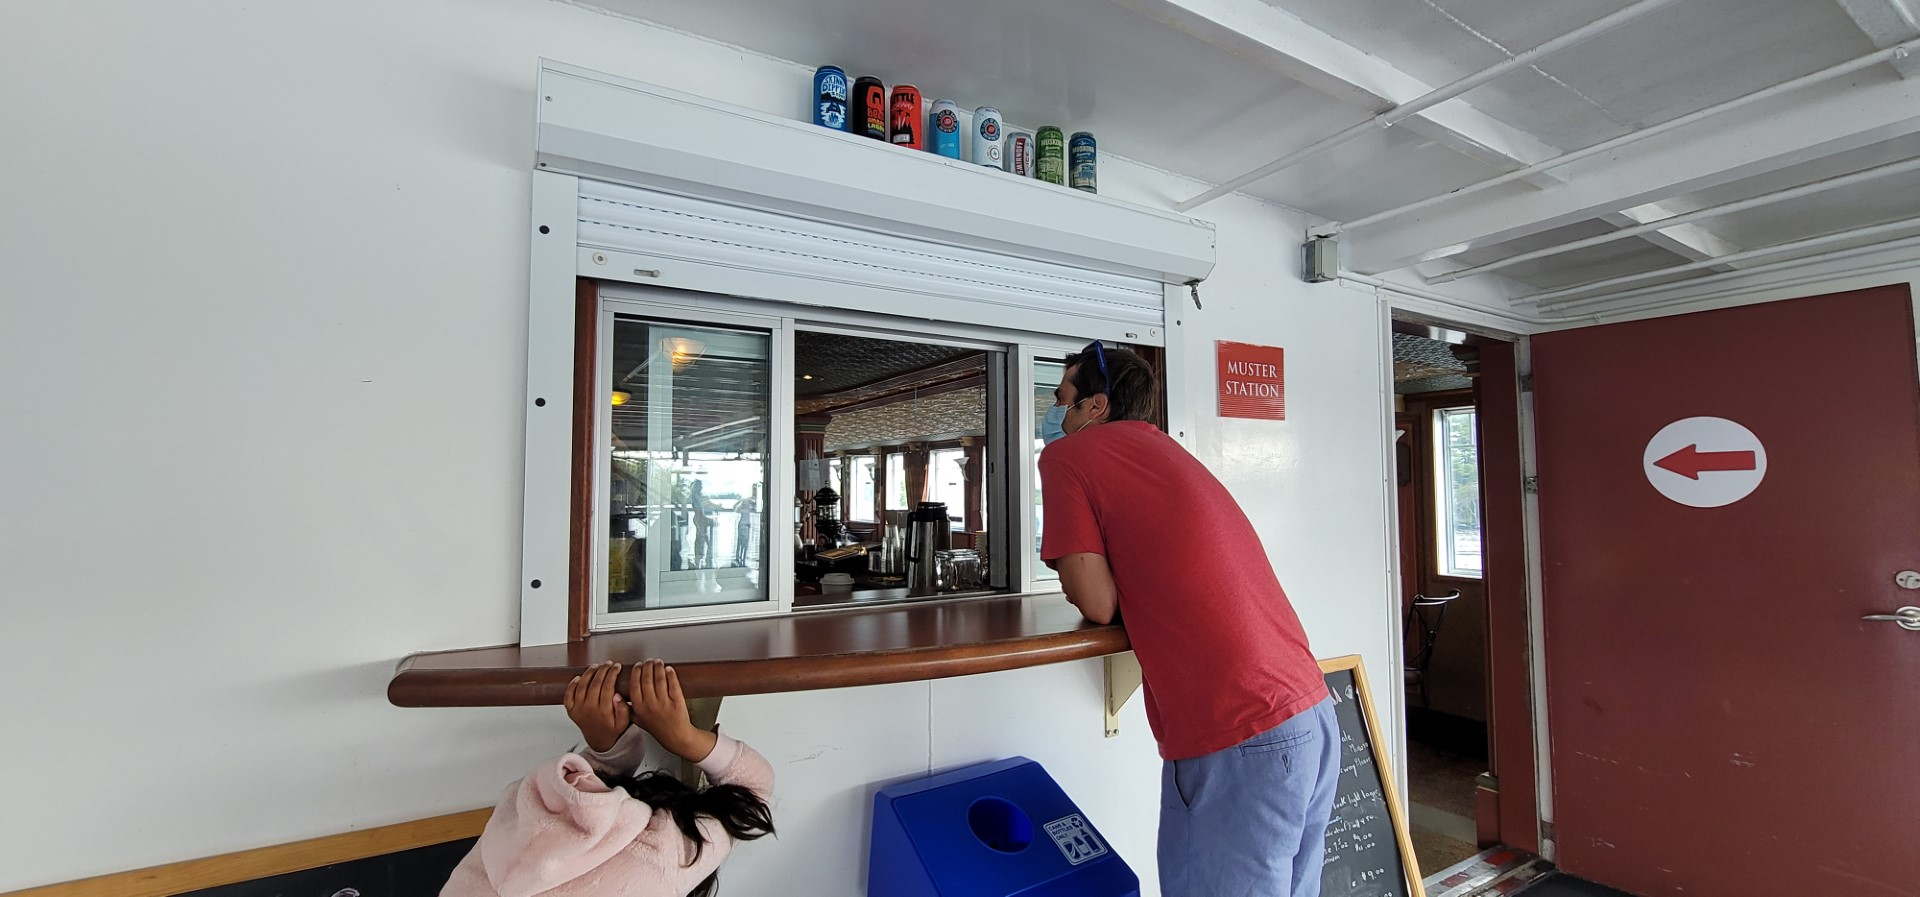 person in red shirt and blue shorts waiting at ship deck window for drinks